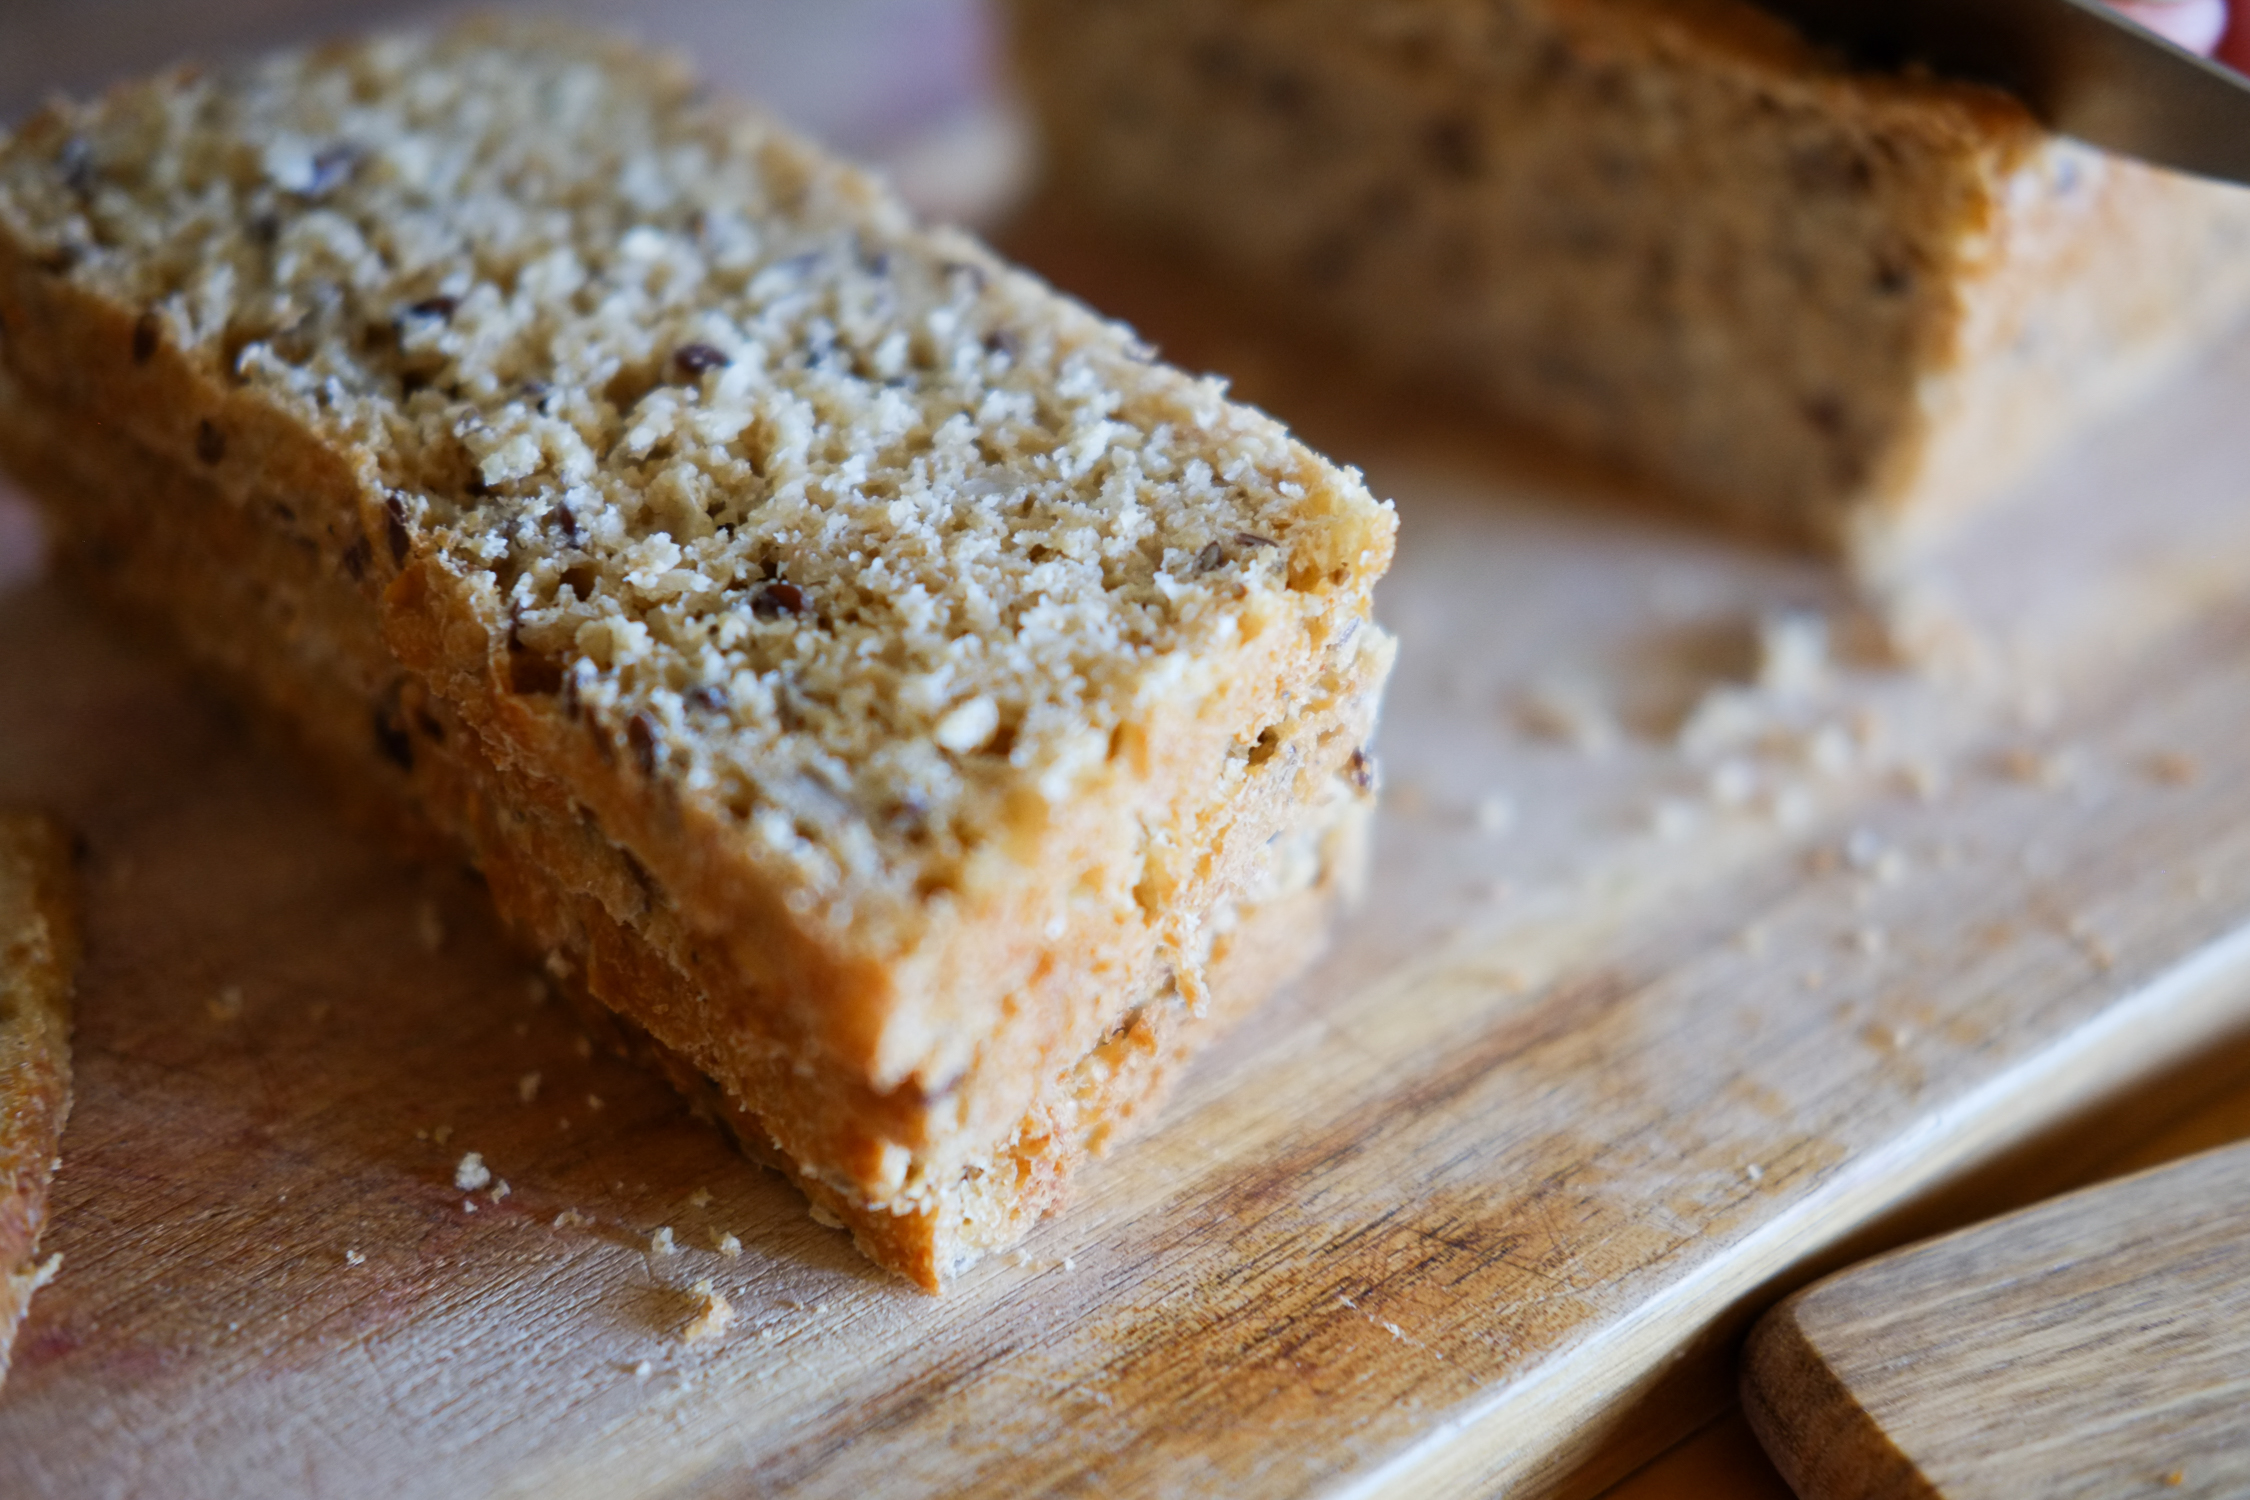 Carol's Homemade Oat & Seed Bread - a great way to start your day at Taigh Na Mara!